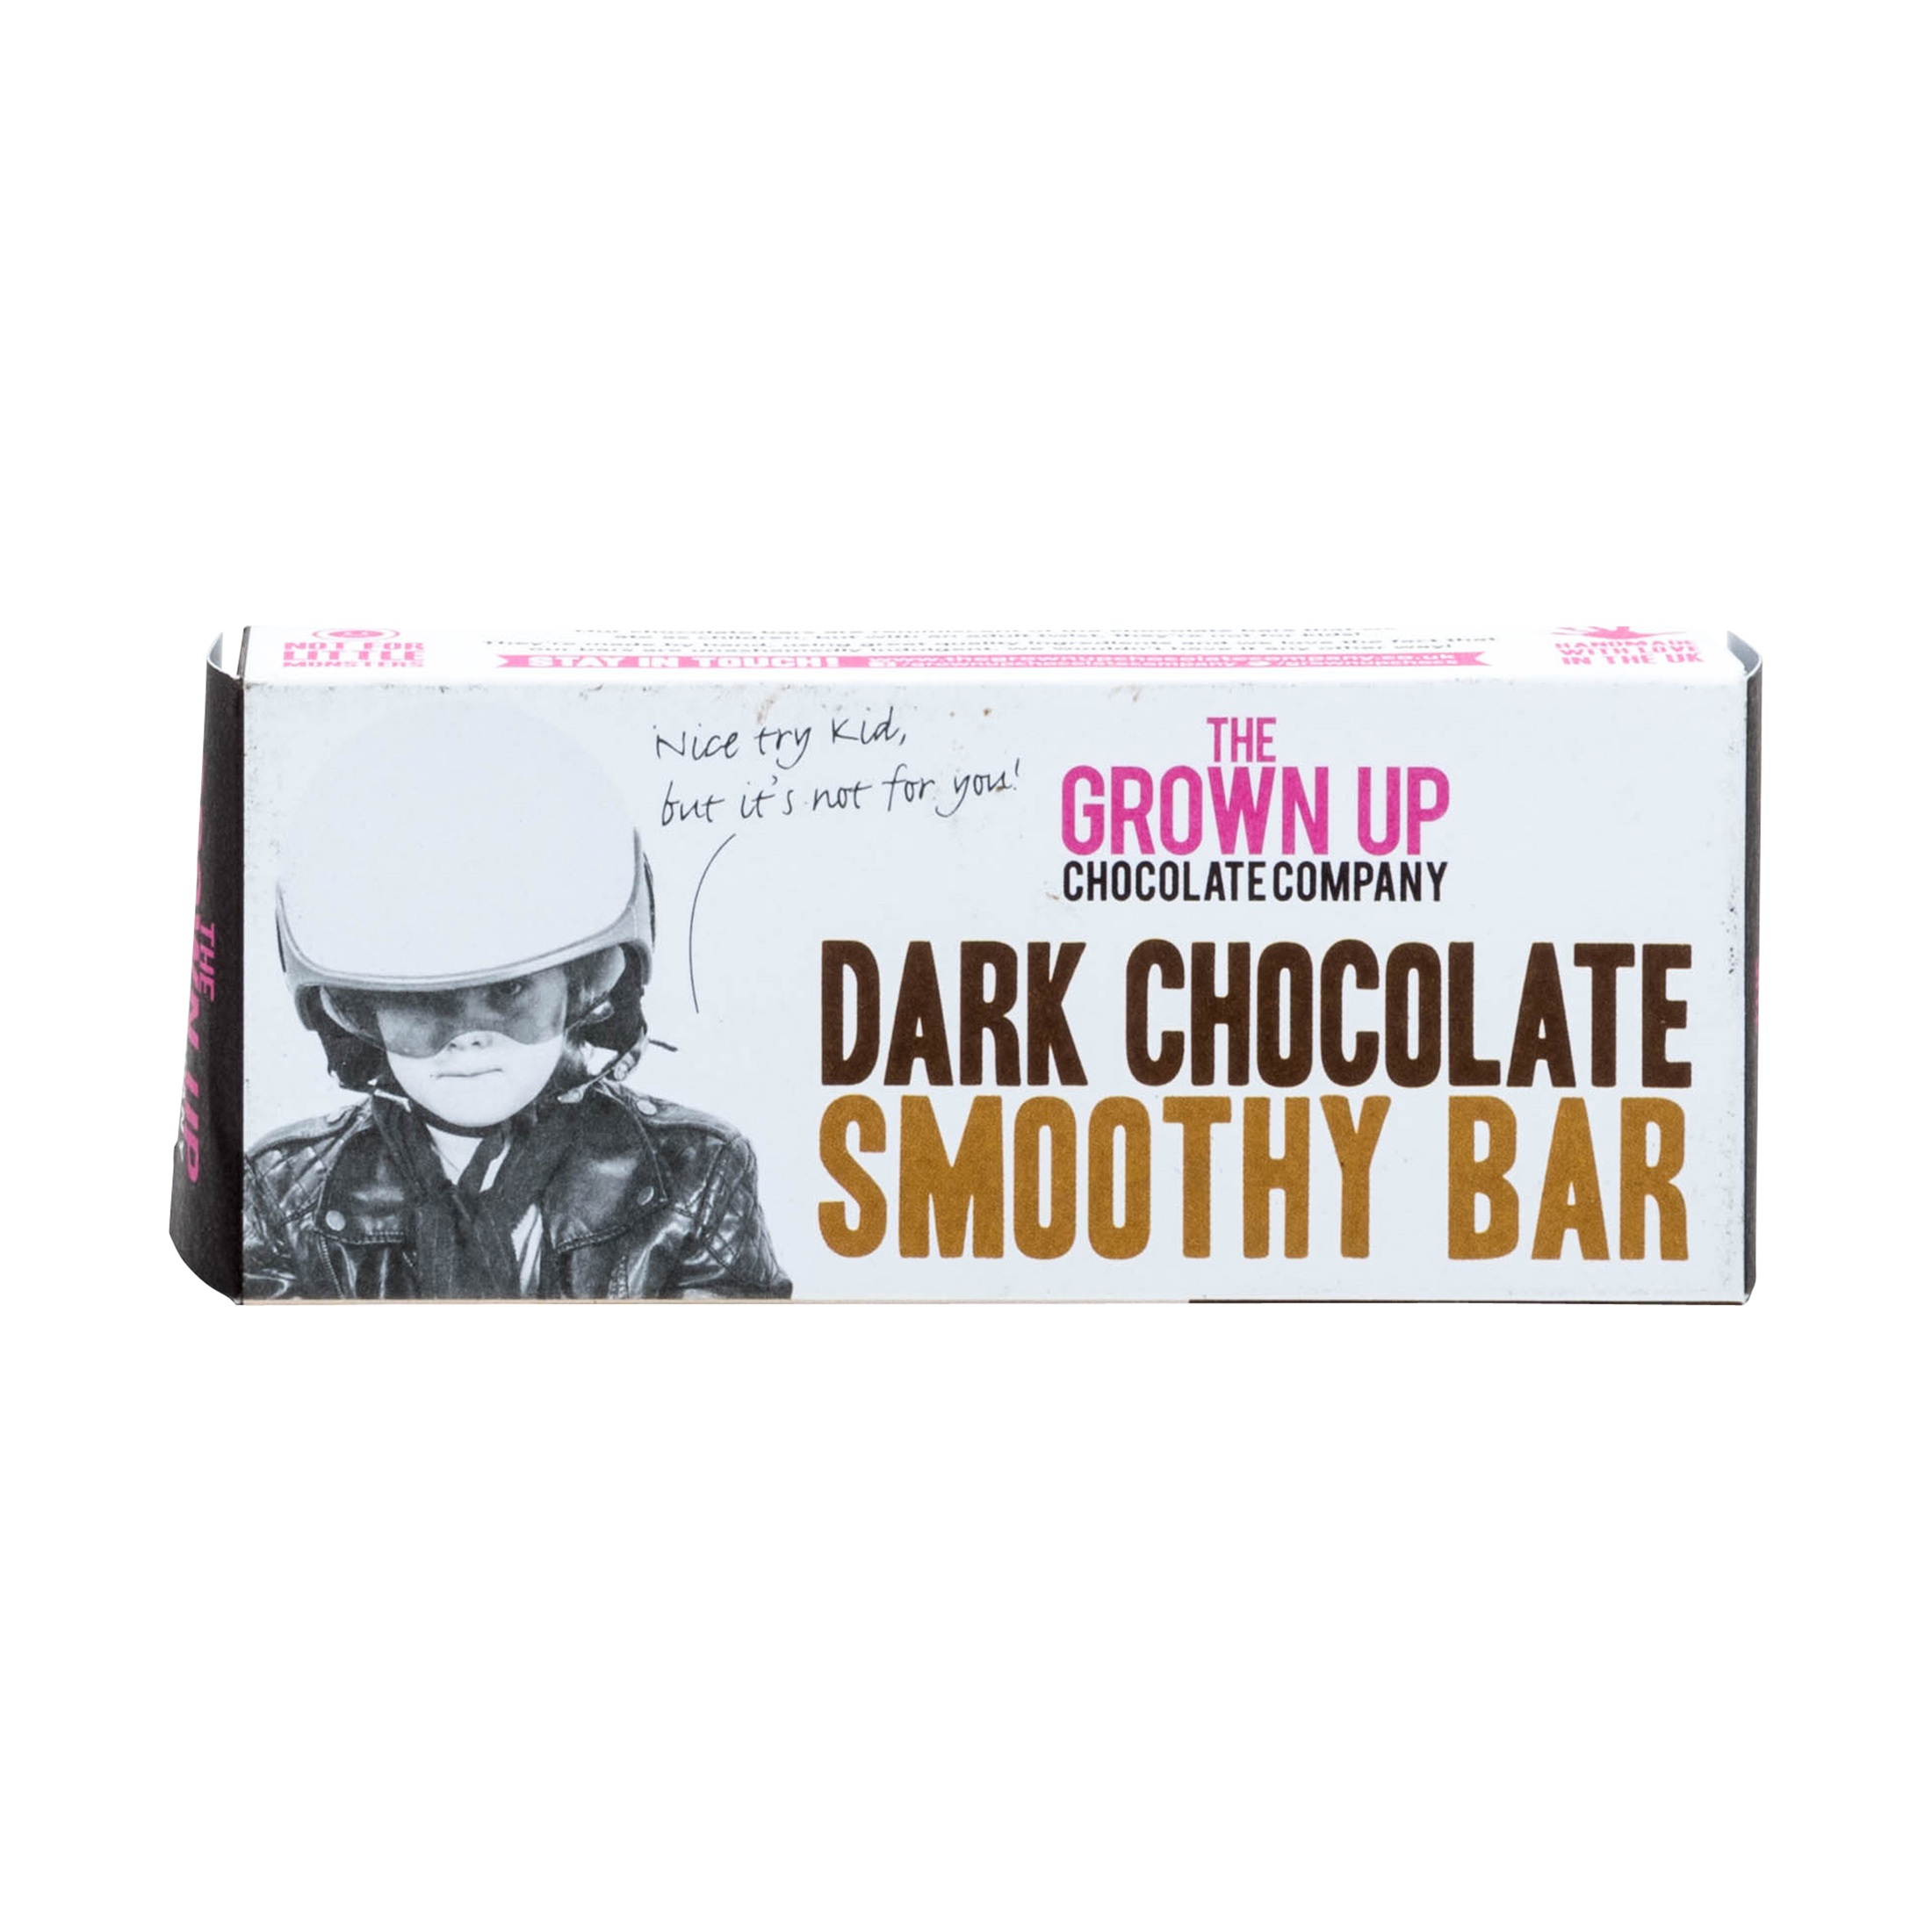 DARK CHOCOLATE SMOOTH 2 BARS